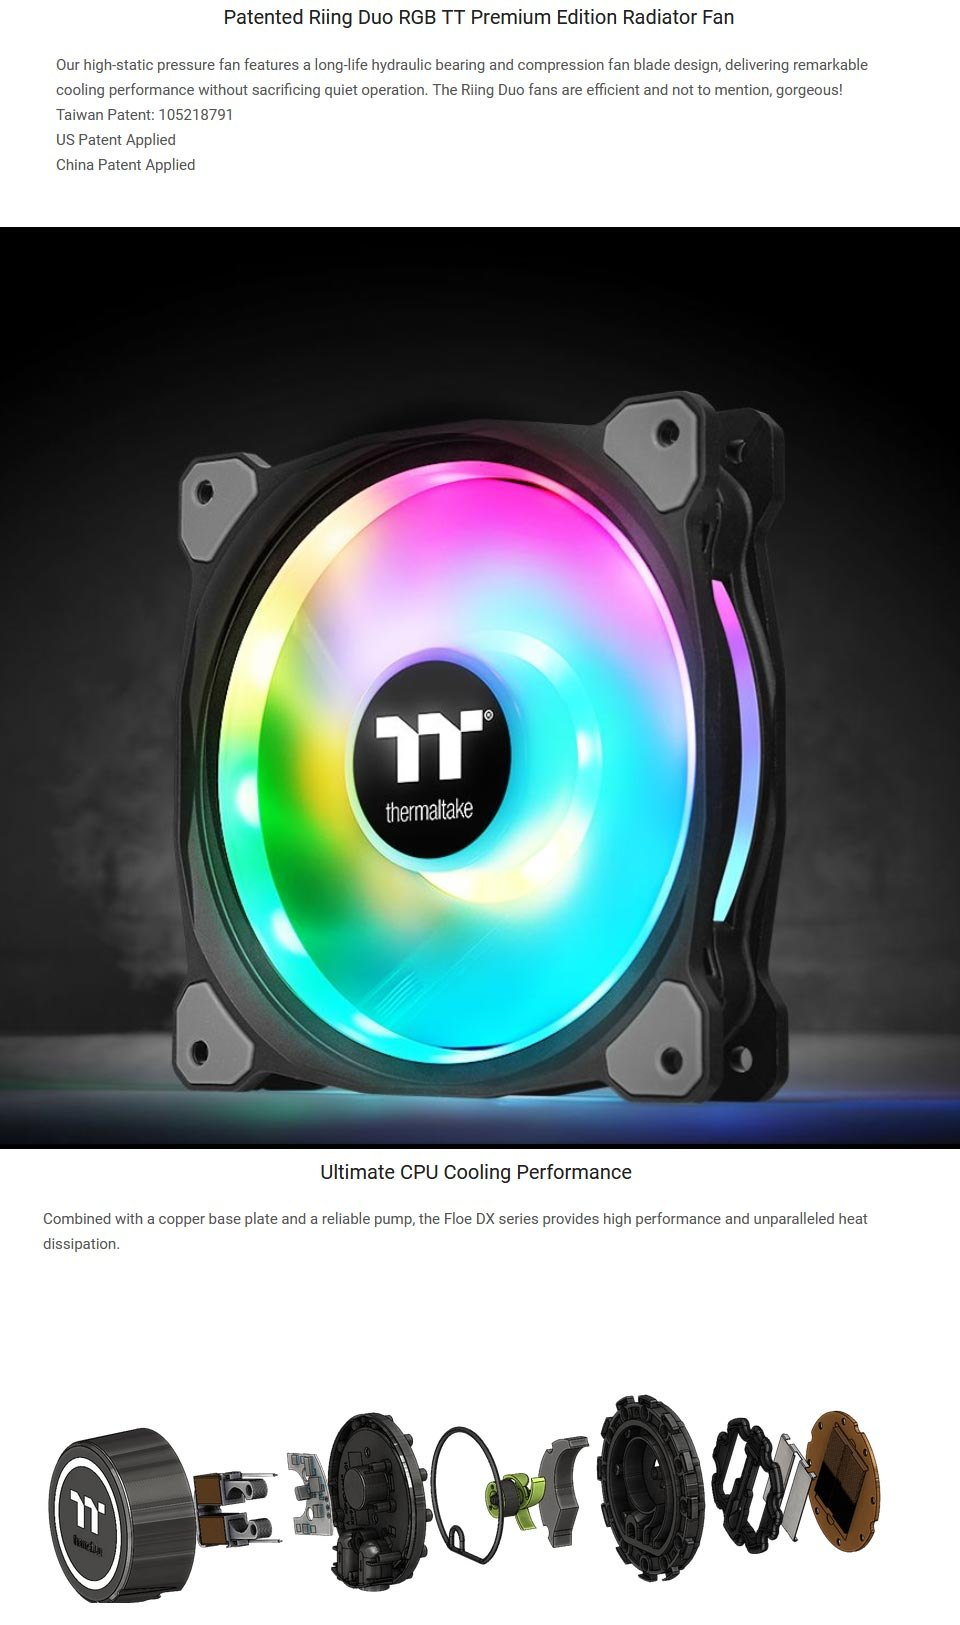 Thermaltake Floe DX RGB 360mm AIO Liquid CPU Cooler features 4